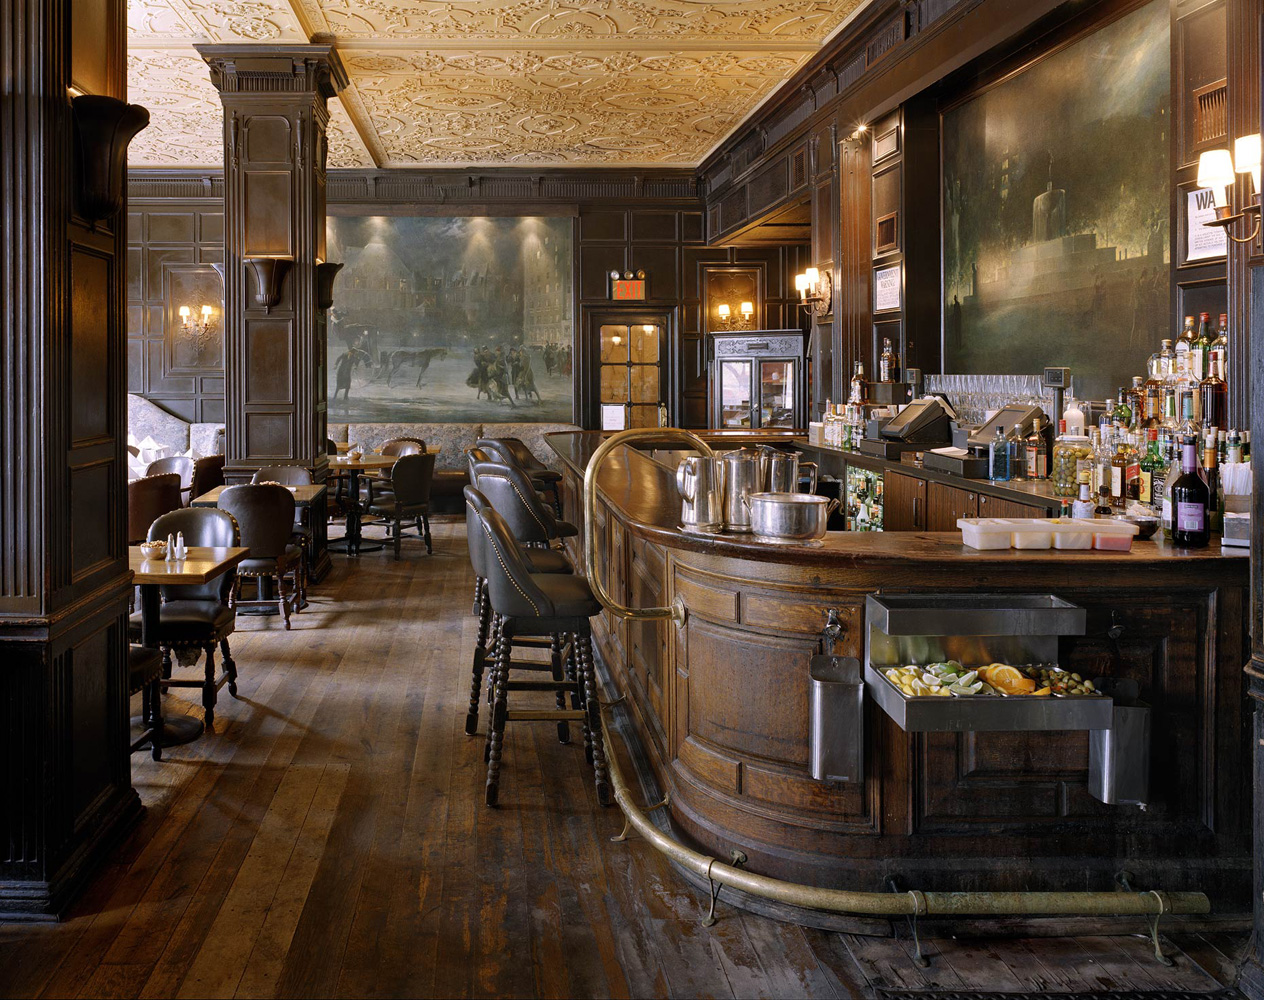 Oak Bar, 768 Fifth Avenue, New York, New York, 2005-2007, by David Leventi. Dibond print of the wooden interior of the bar, with seats and supplies.